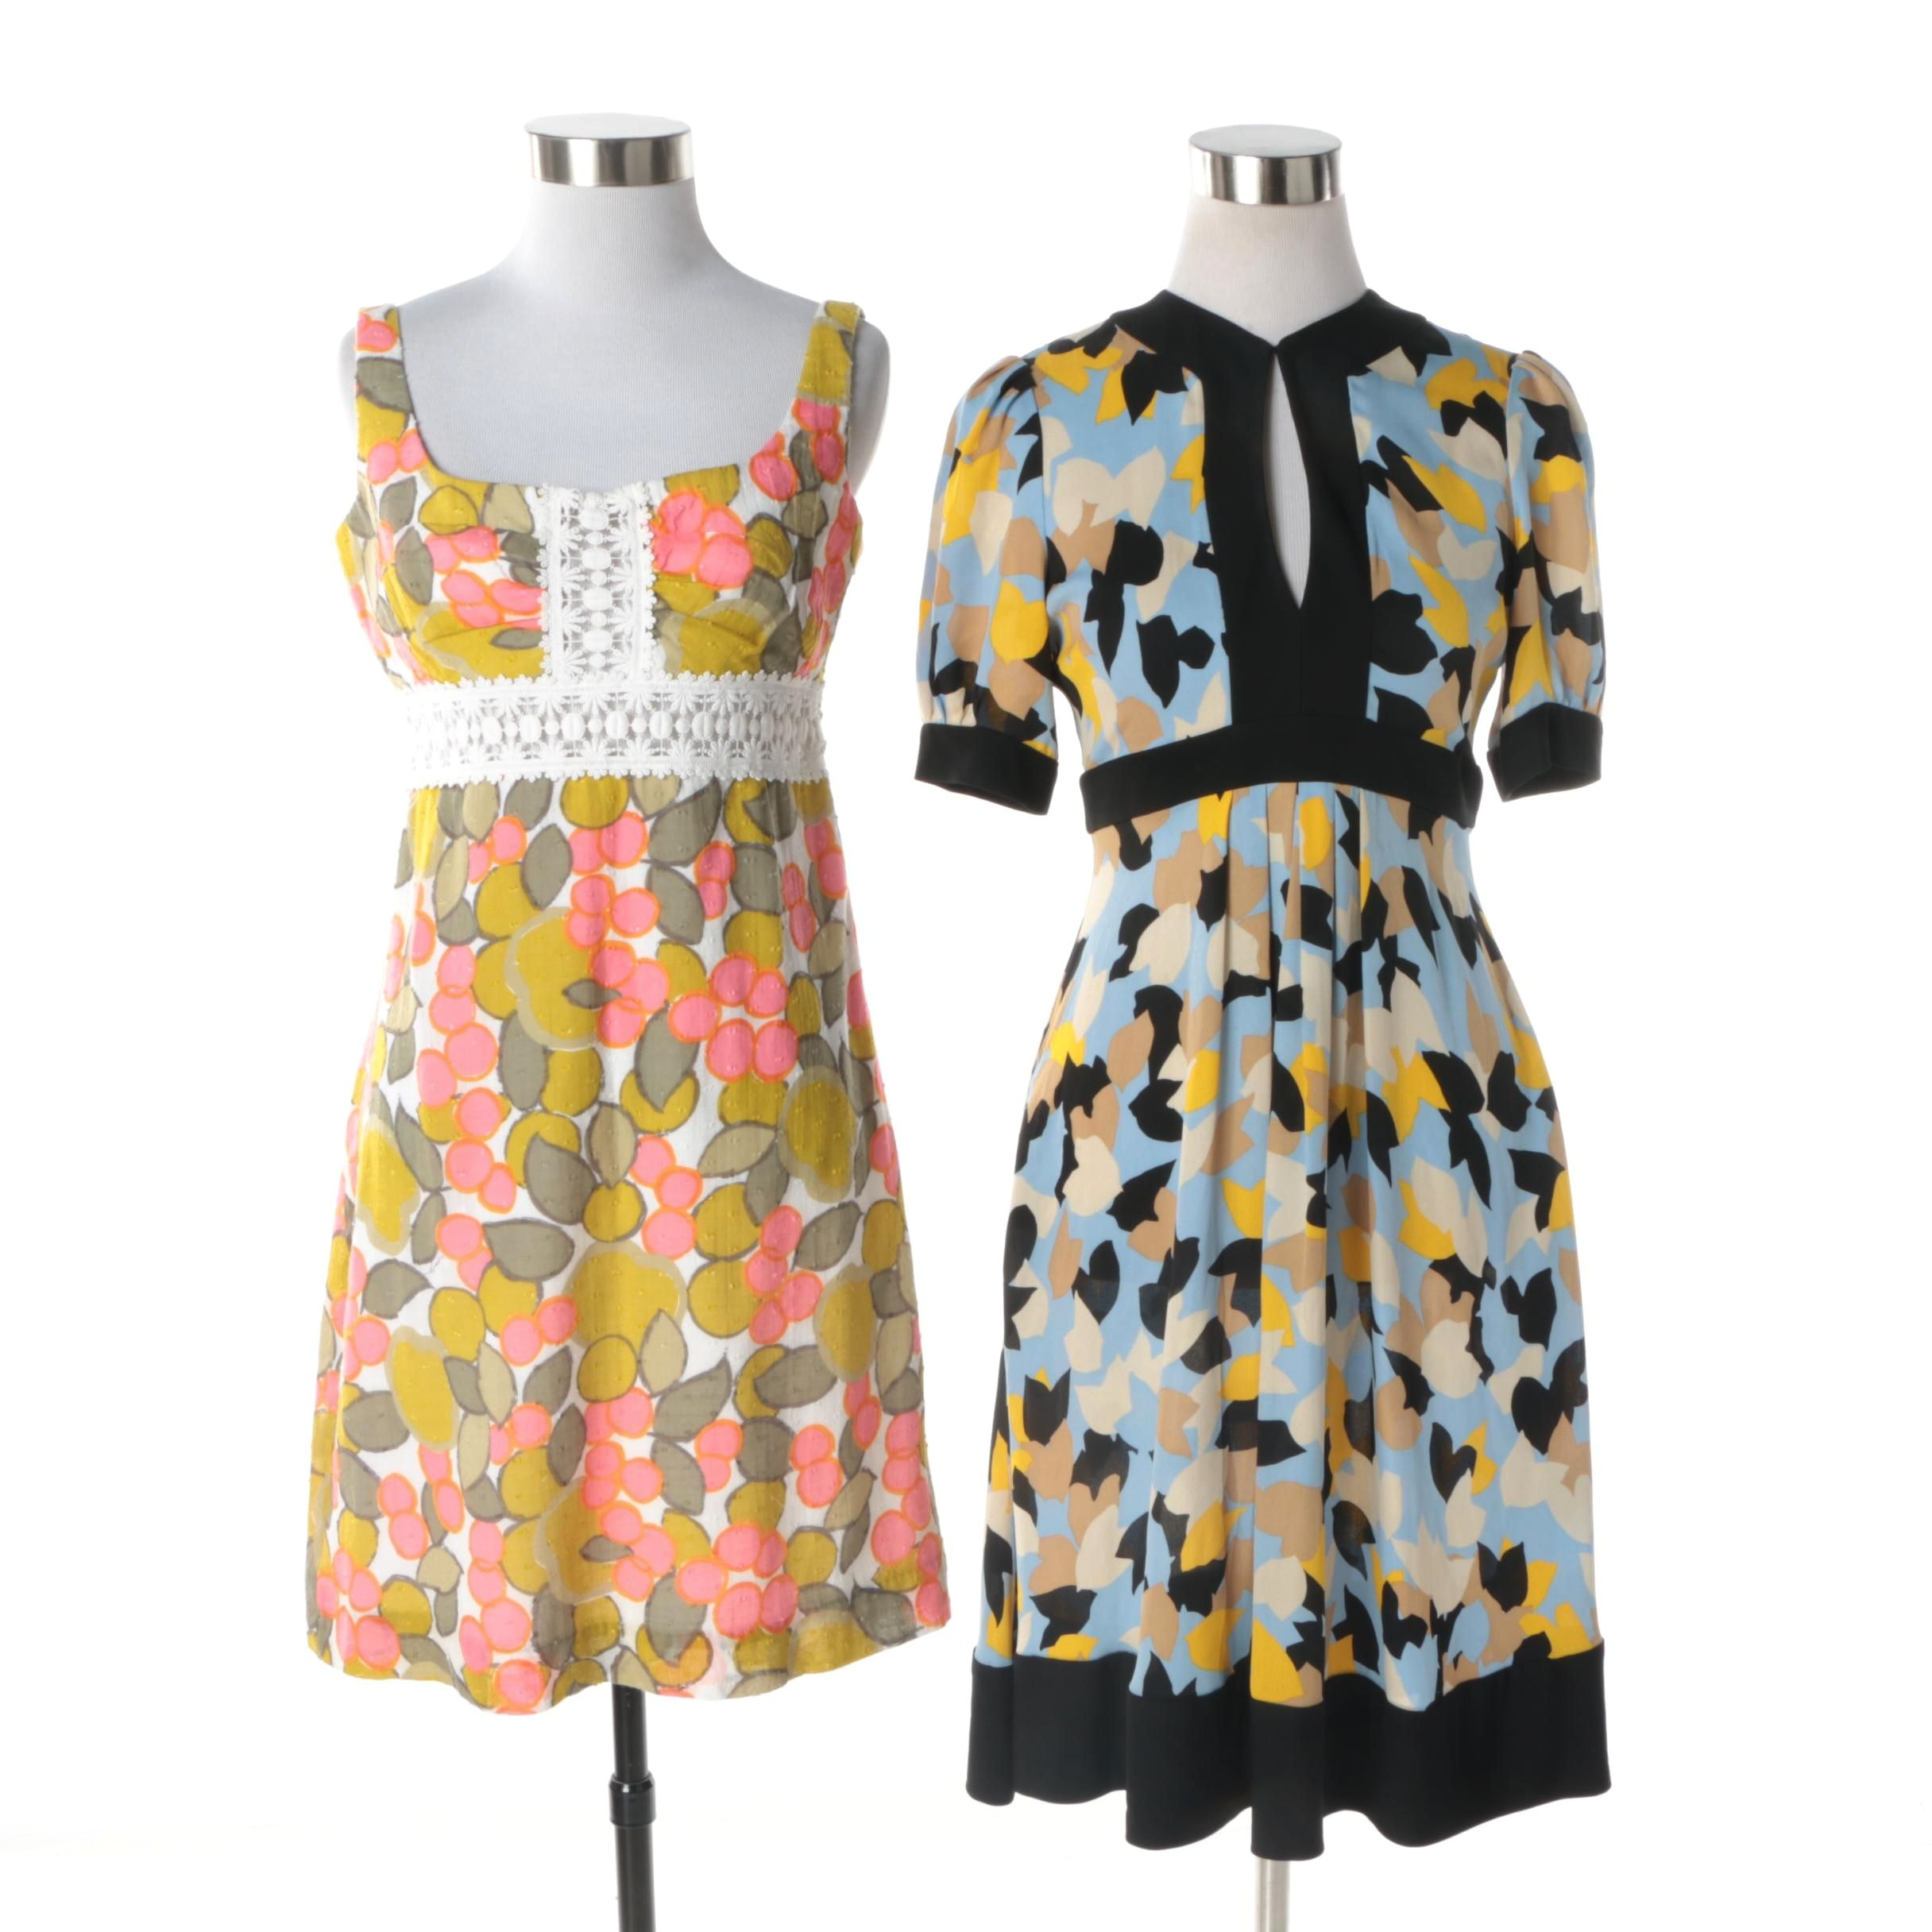 Women's Diane von Furstenberg and Milly Floral Print Dresses